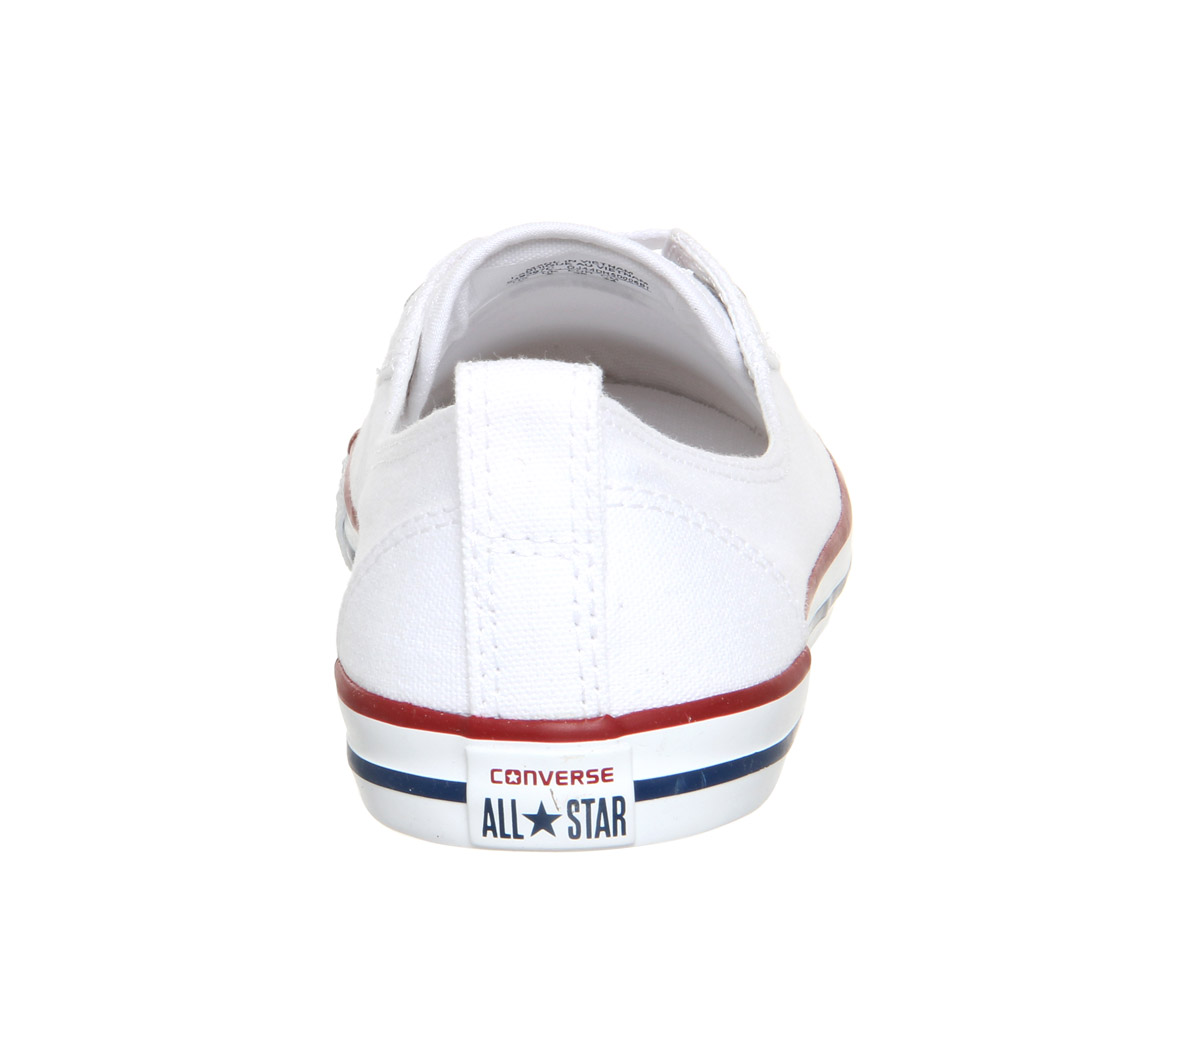 4a108f11150c Sentinel Womens Converse Ctas Ballet Lace Optical White Trainers Shoes